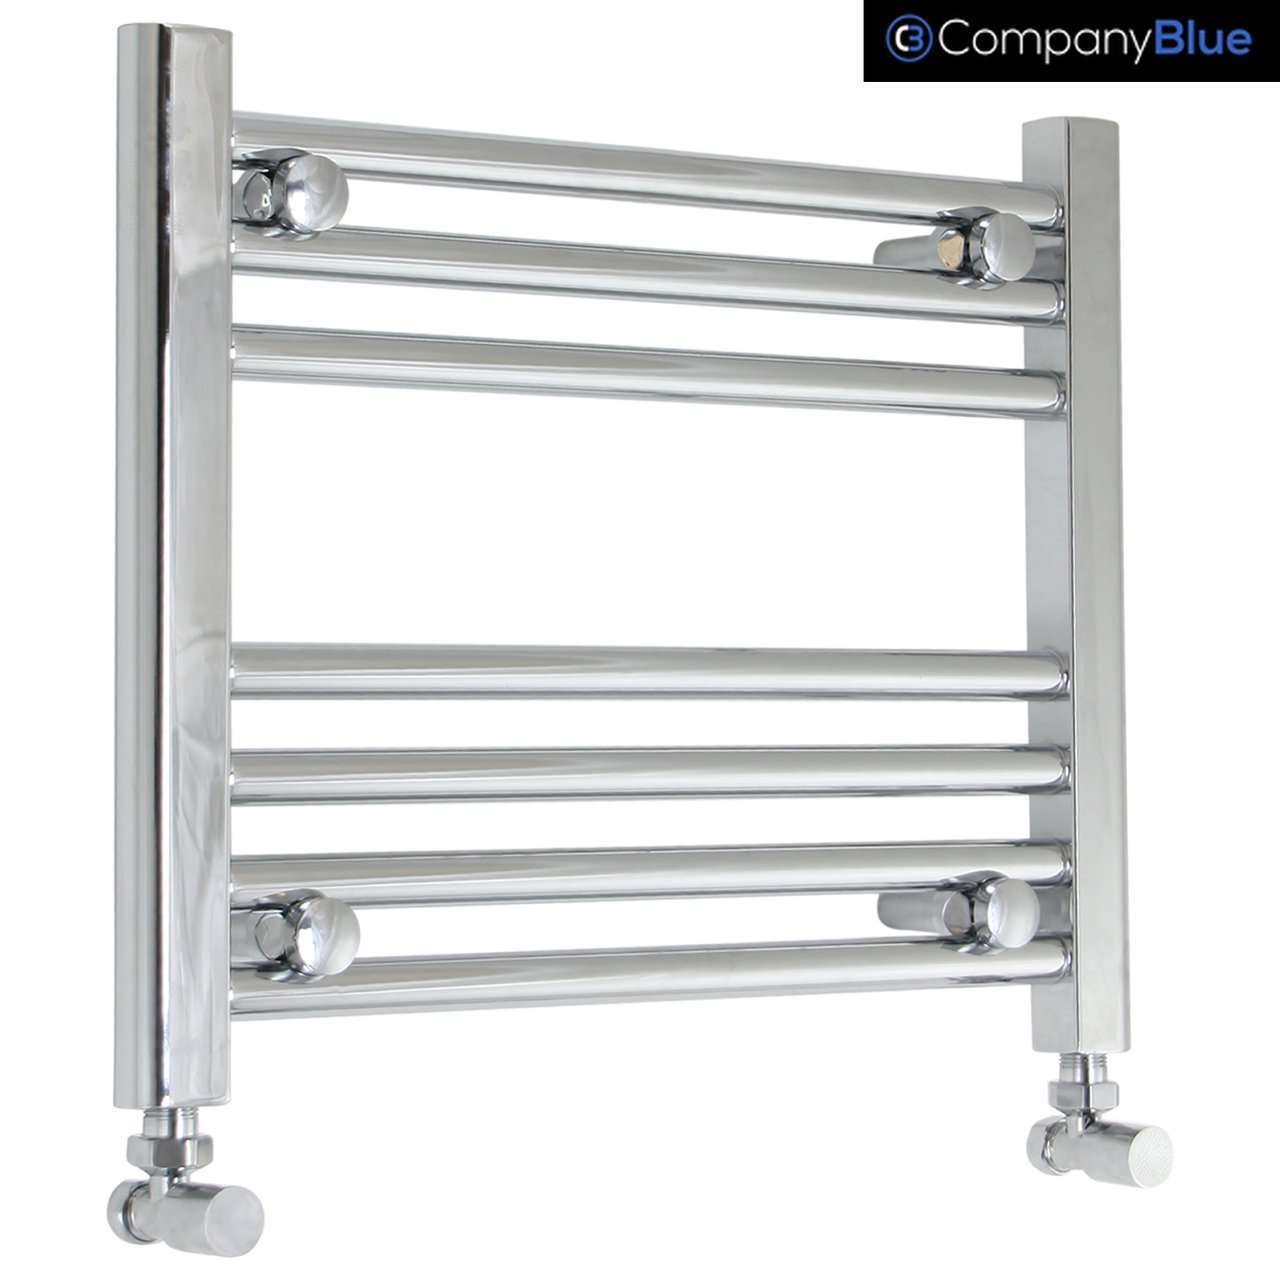 400mm Wide 400mm High Curved Chrome Heated Towel Rail Radiator HTR,Towel Rail Only